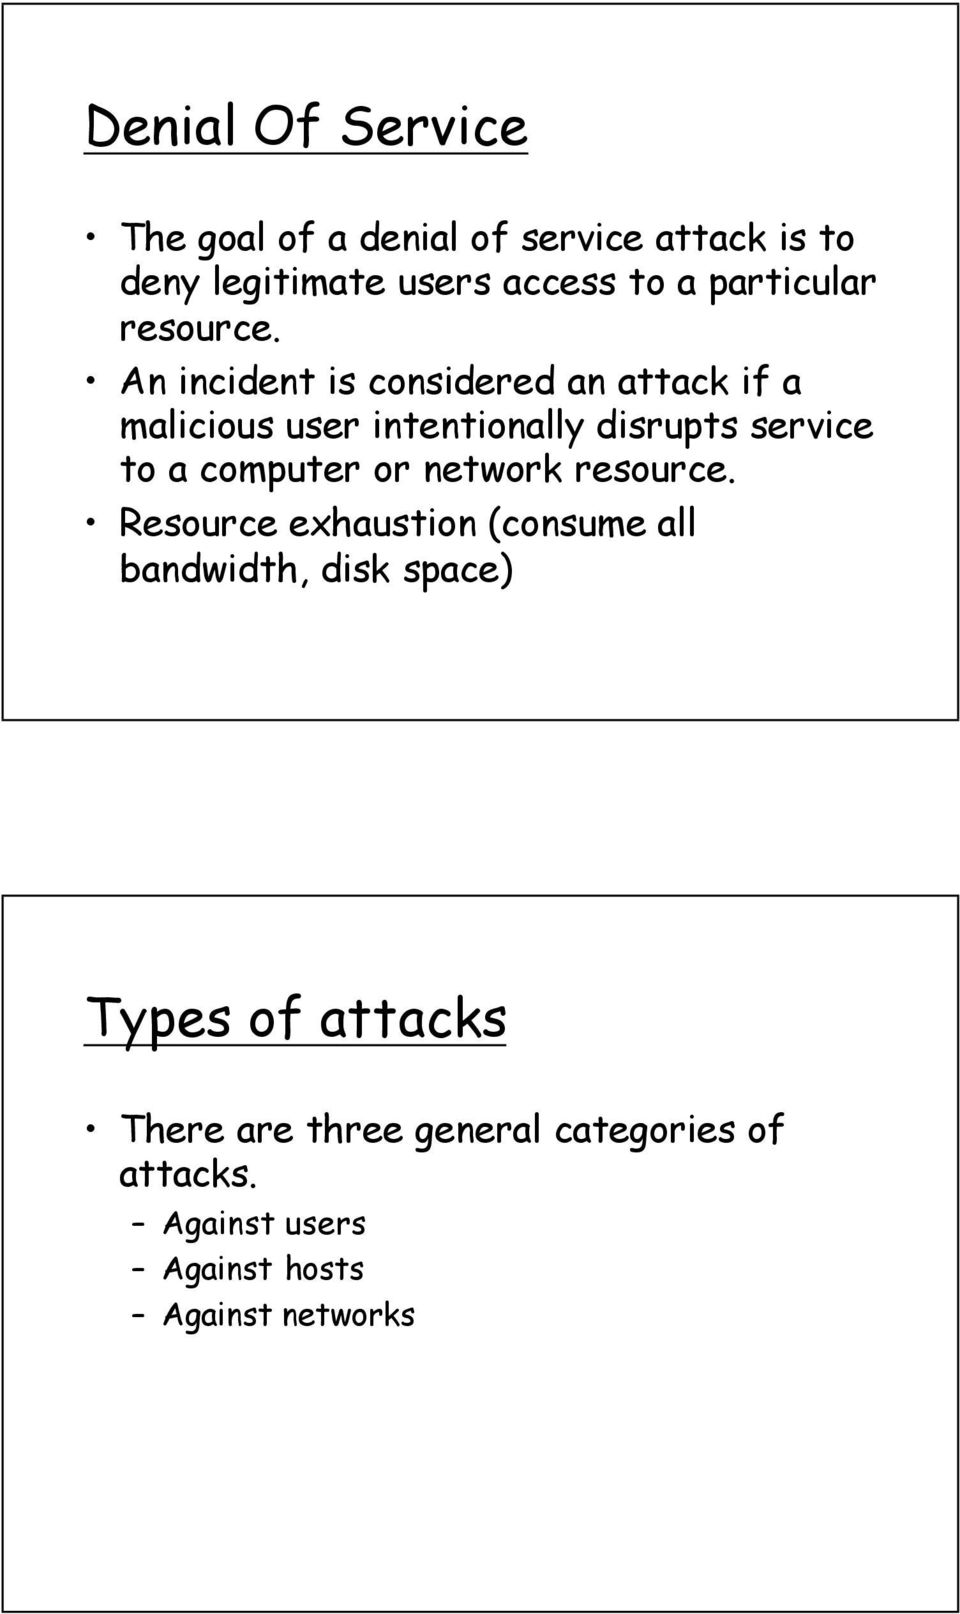 An incident is considered an attack if a malicious user intentionally disrupts service to a computer